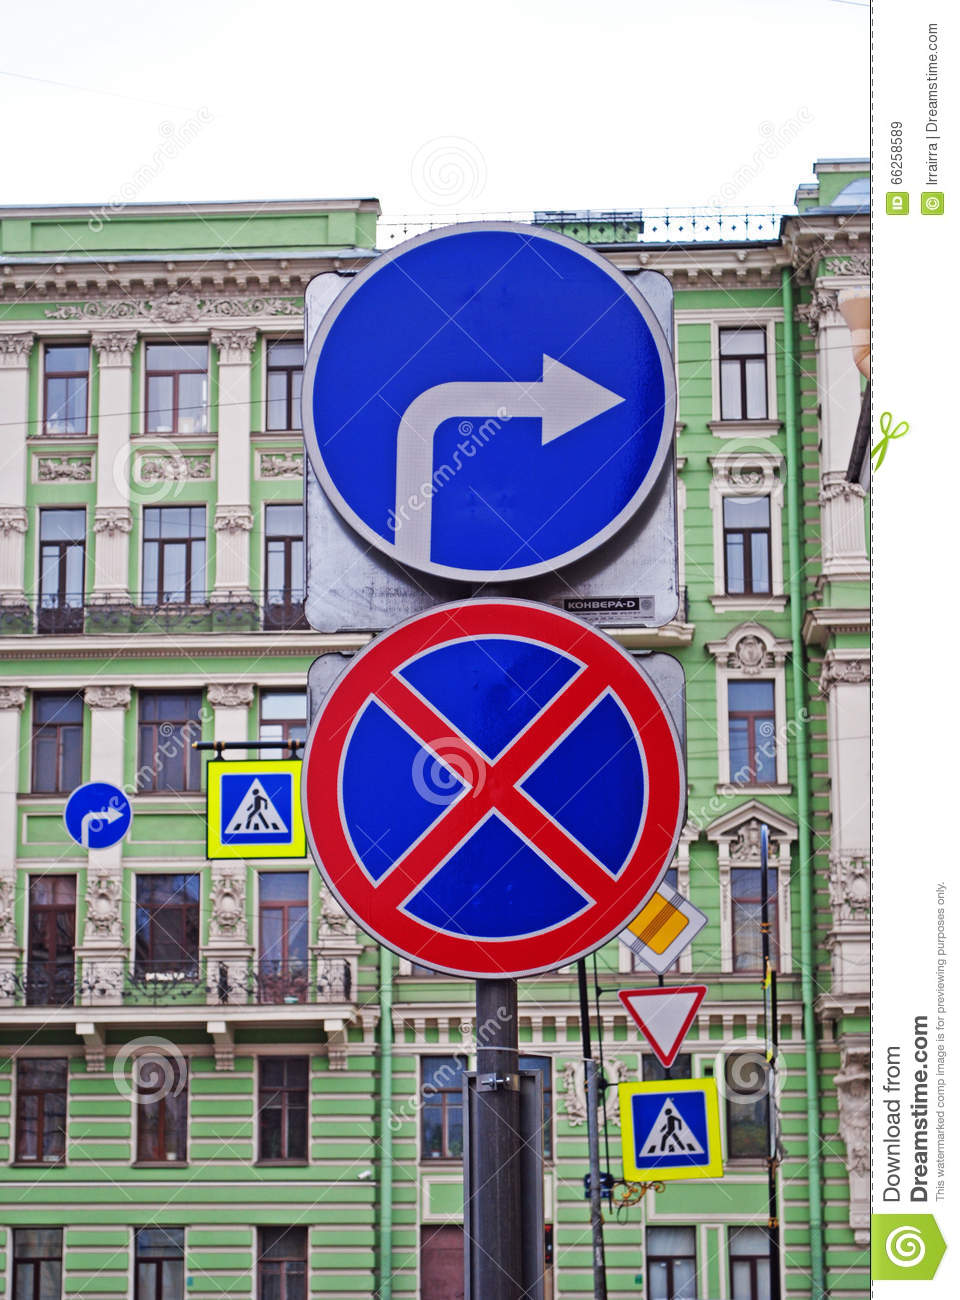 In Russia, allowed to turn right to red